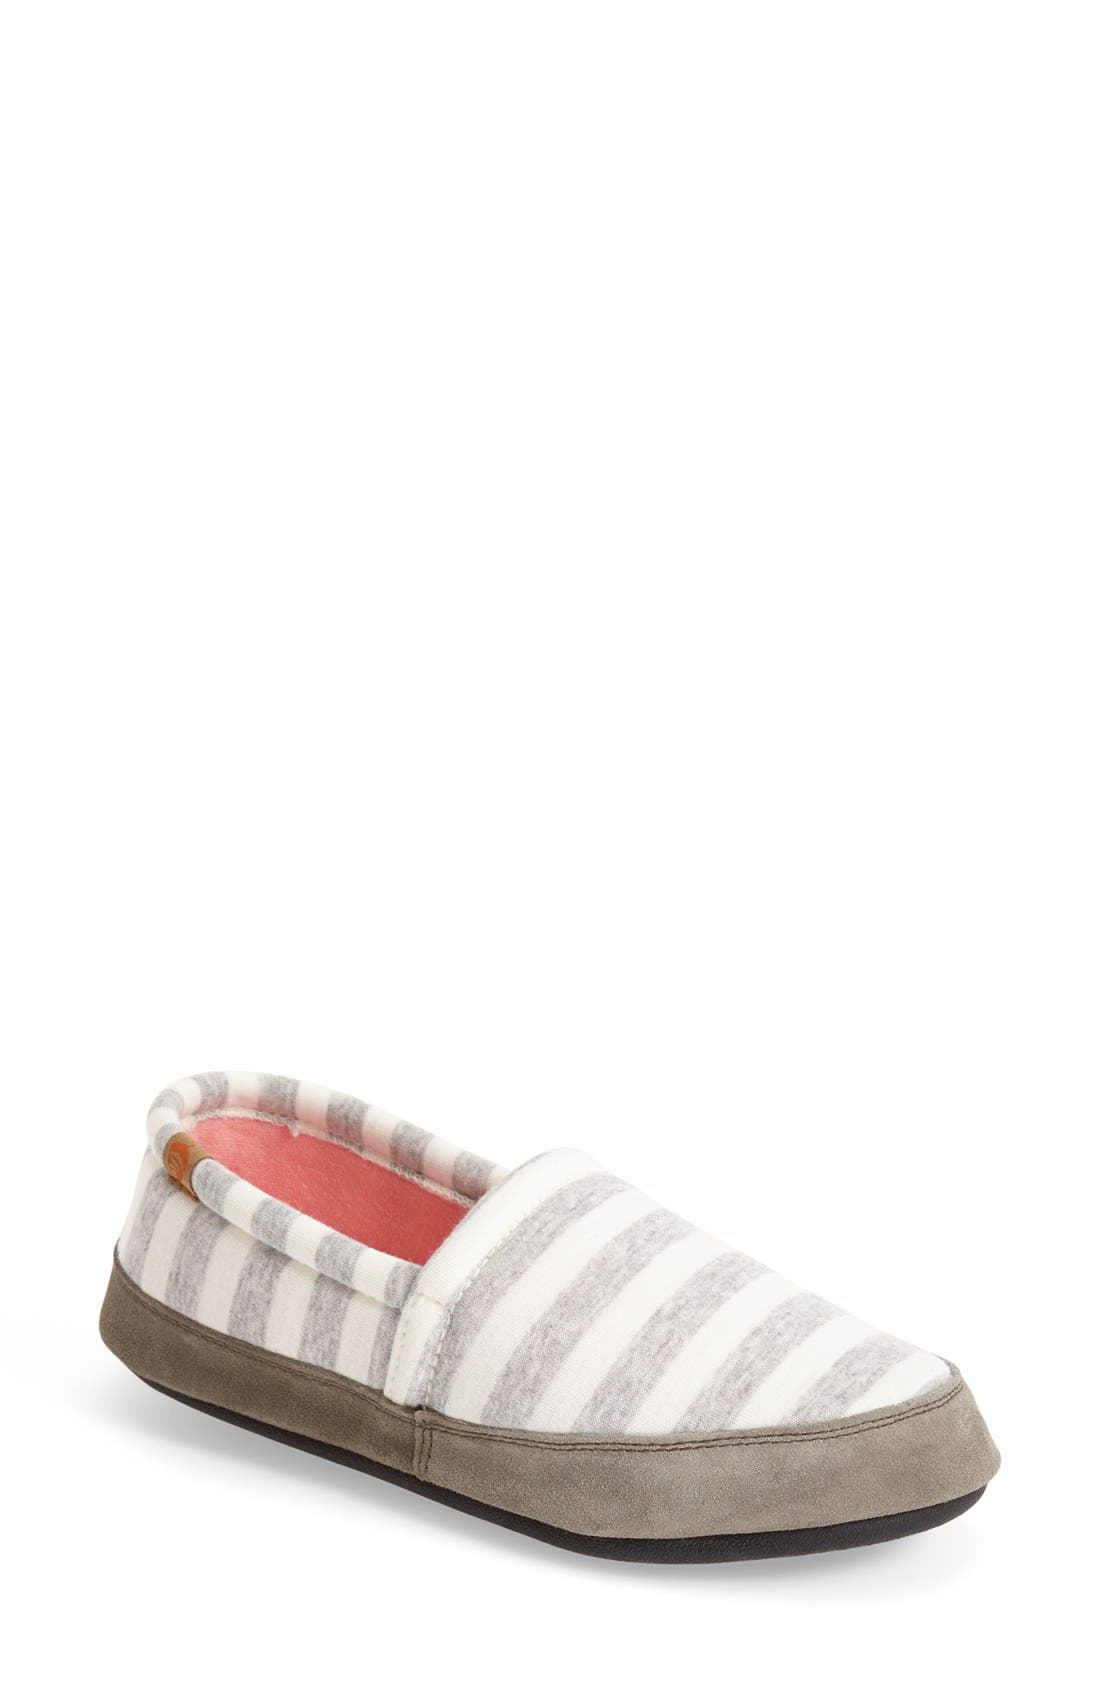 ACORN Summer Weight Moc Slipper in White Stripe